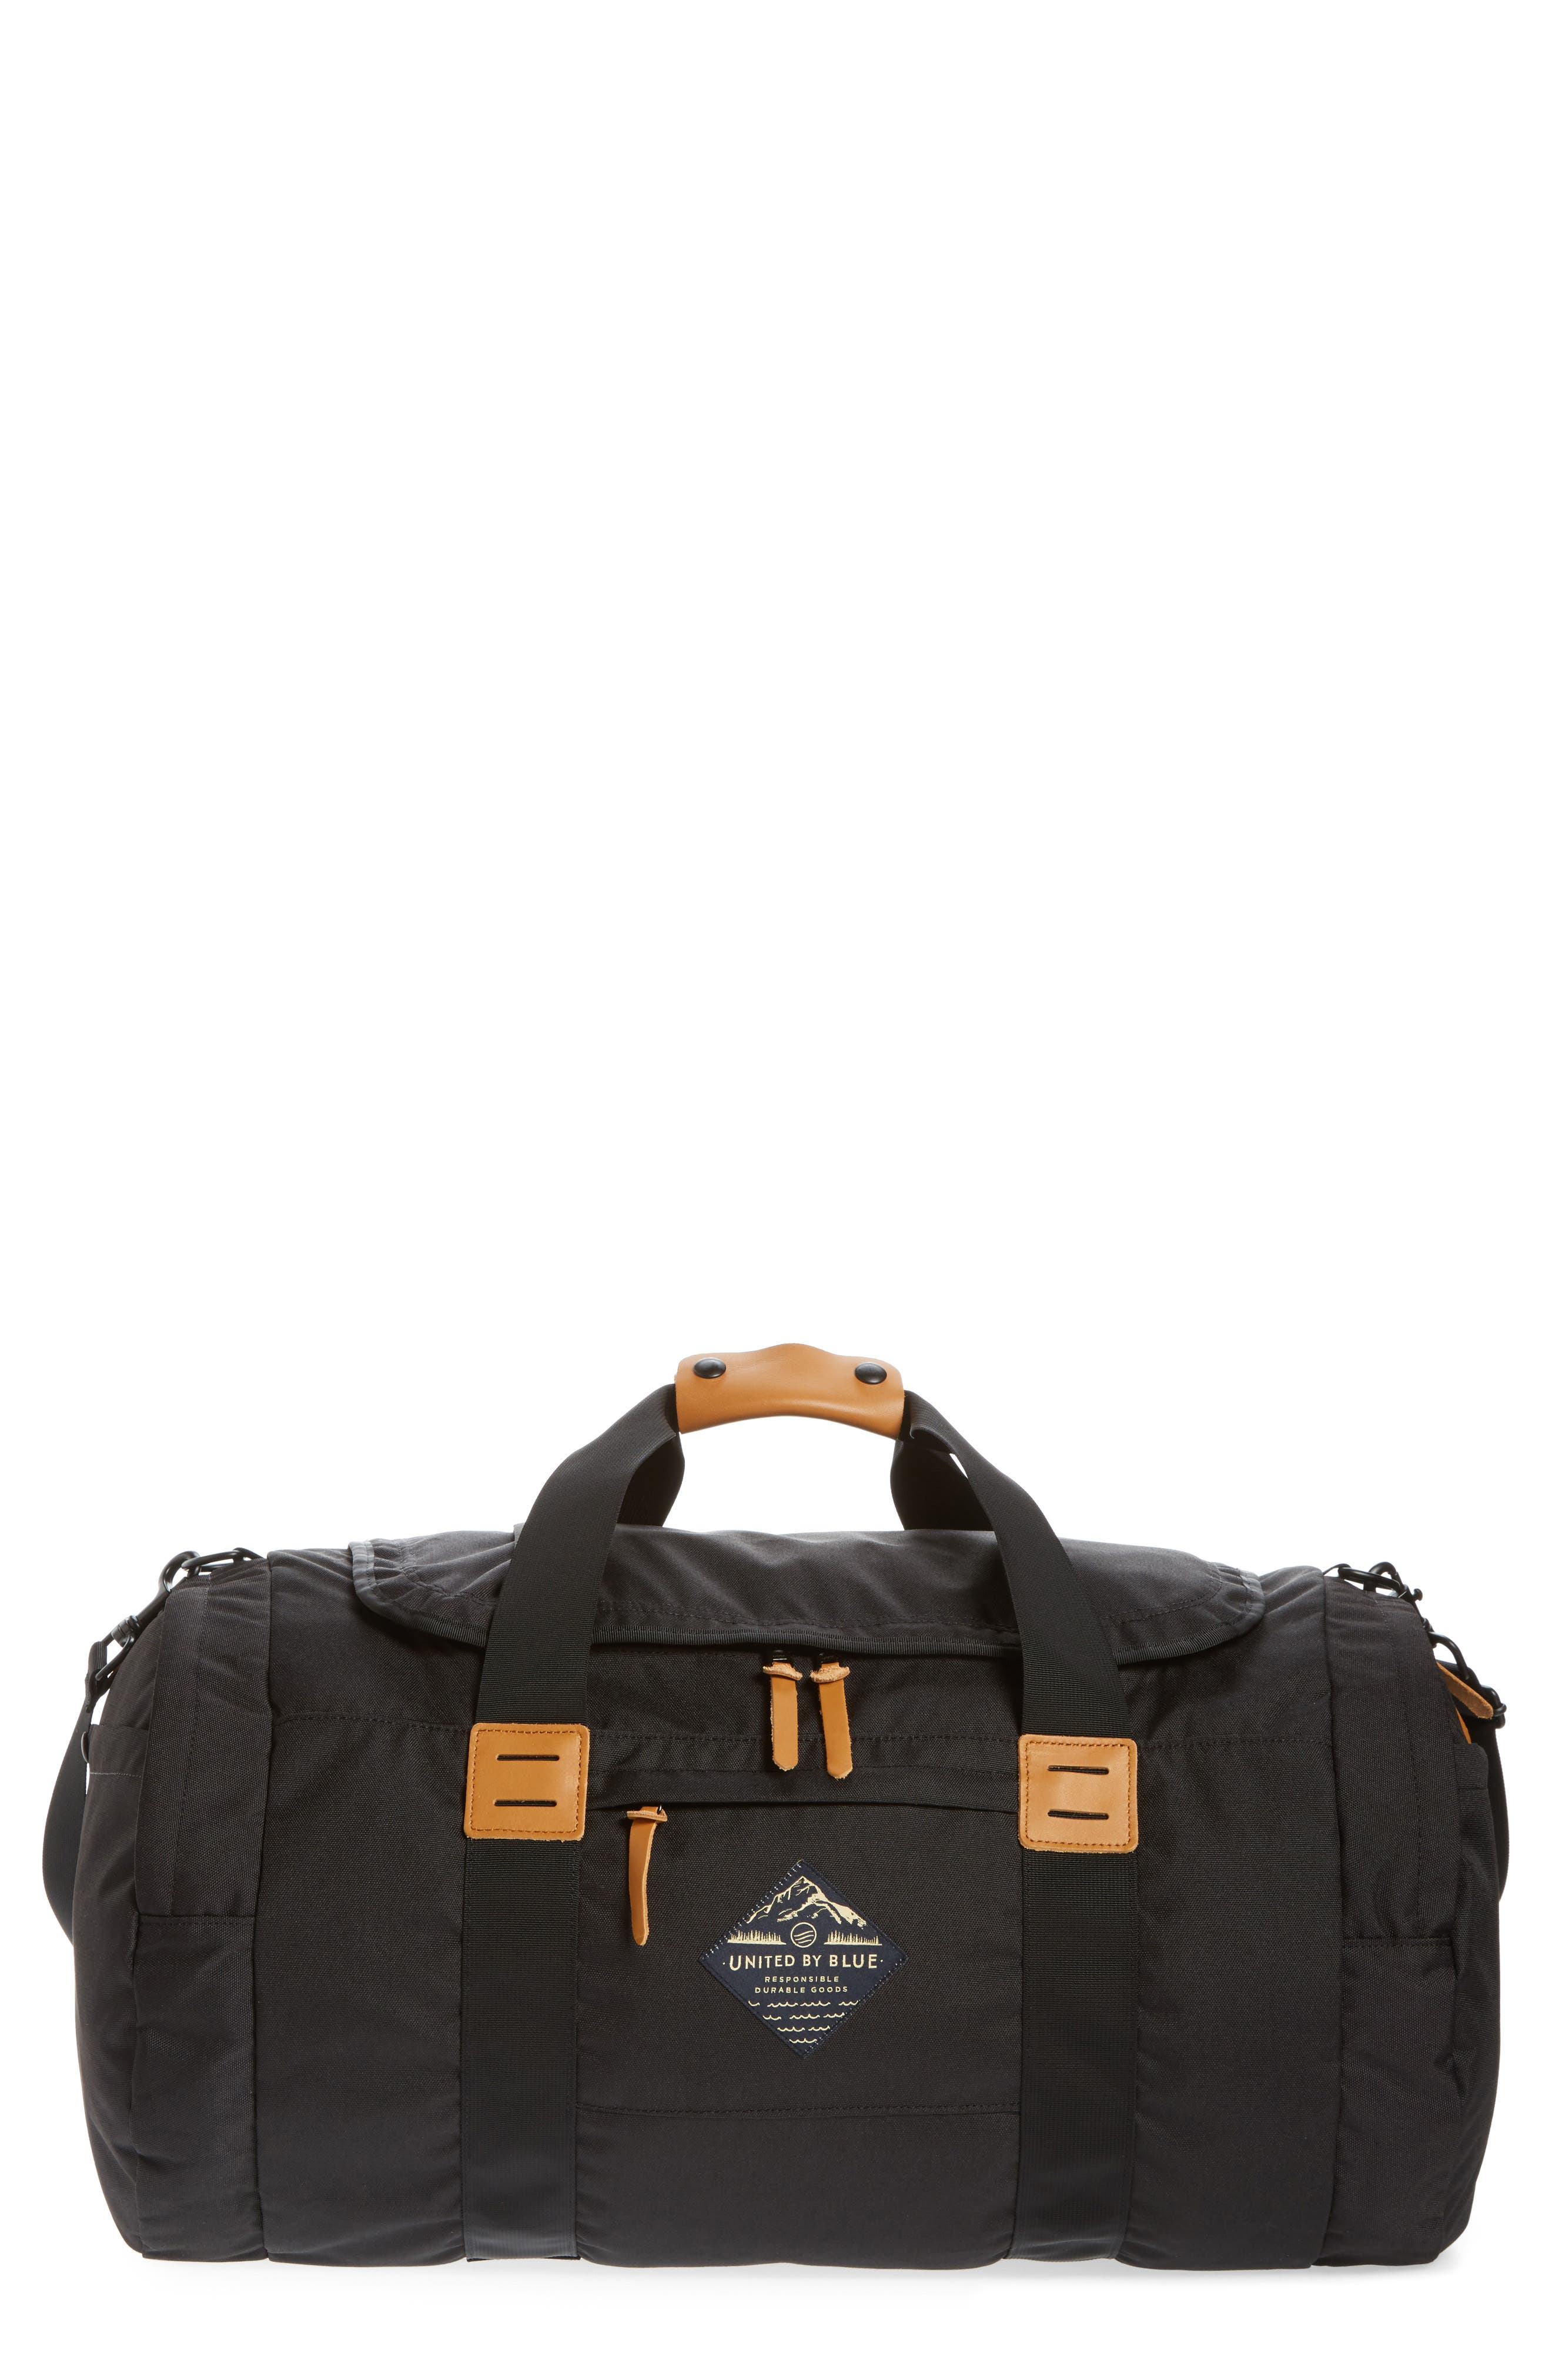 UNITED BY BLUE Arc Duffel Bag, Main, color, 001